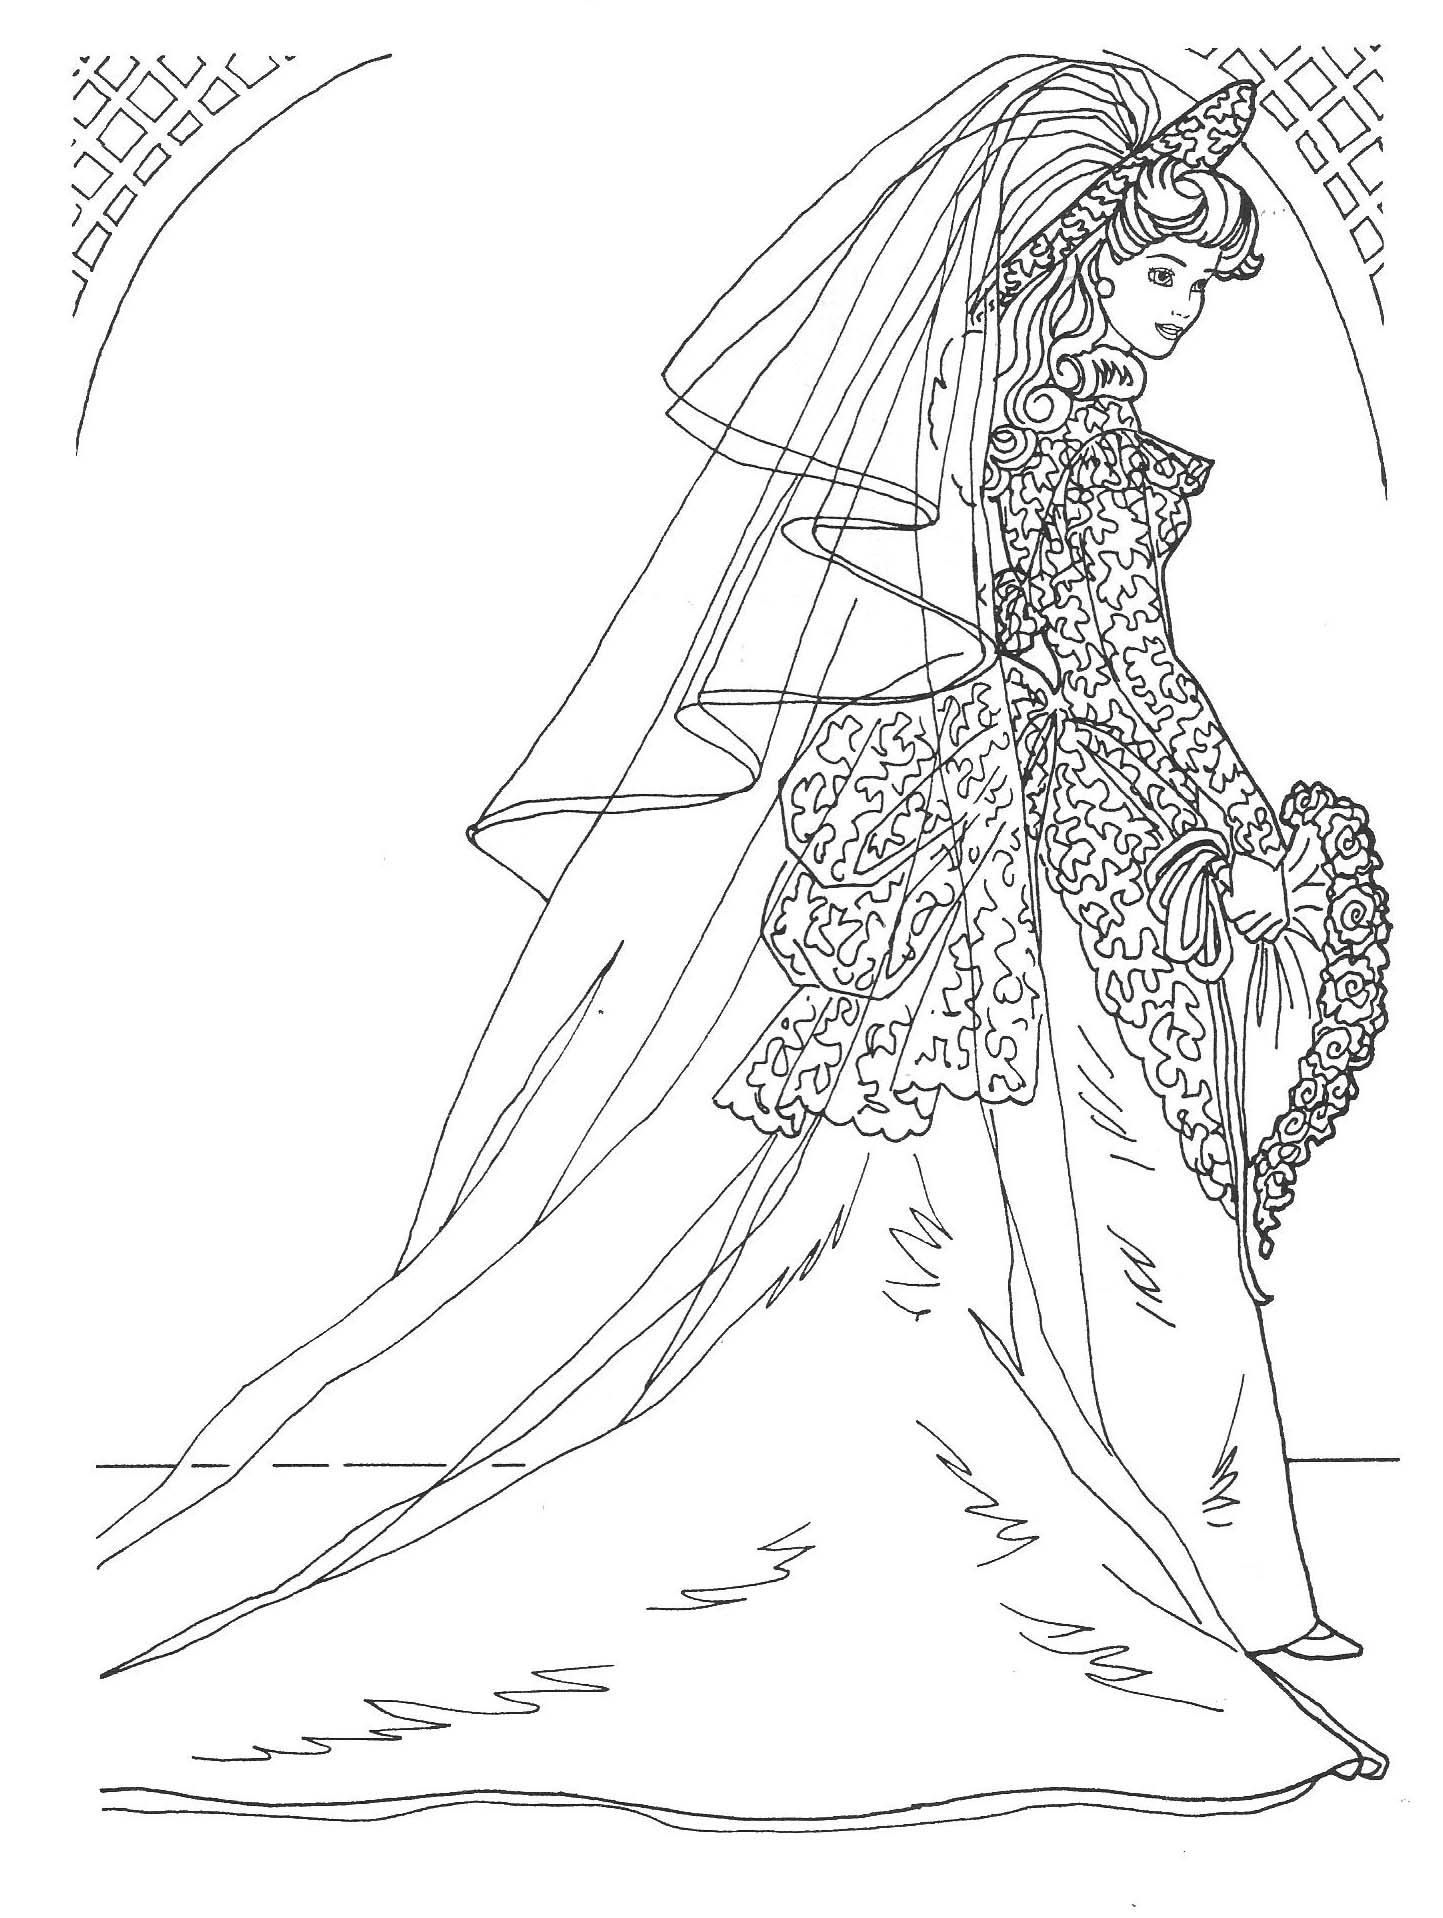 Free Barbie Colouring Pages Games 5 Coloring Pages Barbie Coloring Crayola Coloring Pages Barbie Coloring Pages